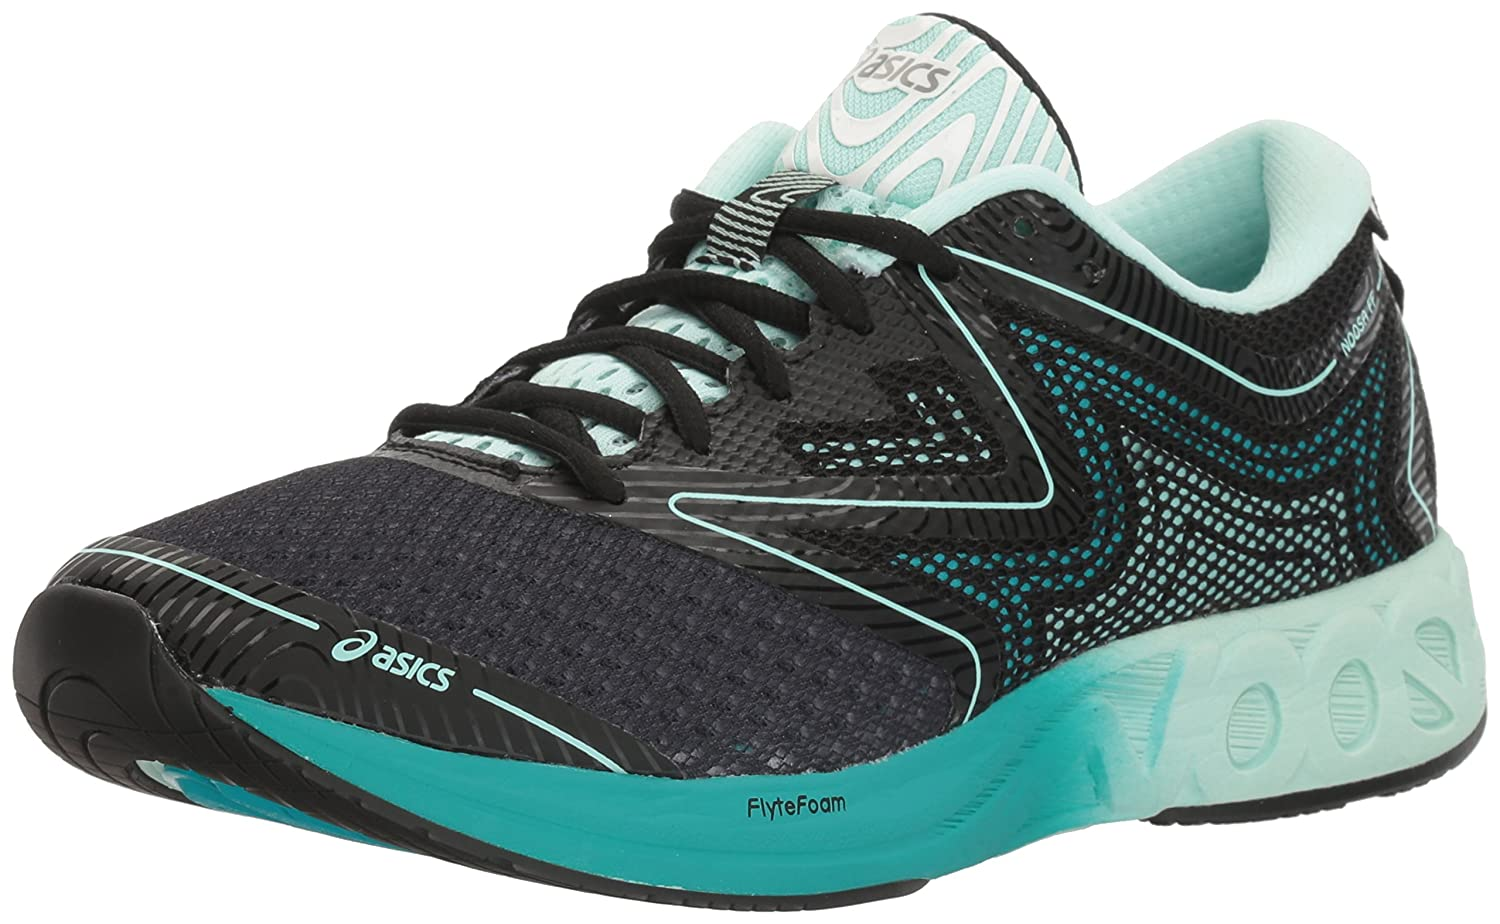 ASICS Women's Noosa FF Running Shoe B01GSRX9Y2 11.5 B(M) US|Black/Bay/Viridian Green